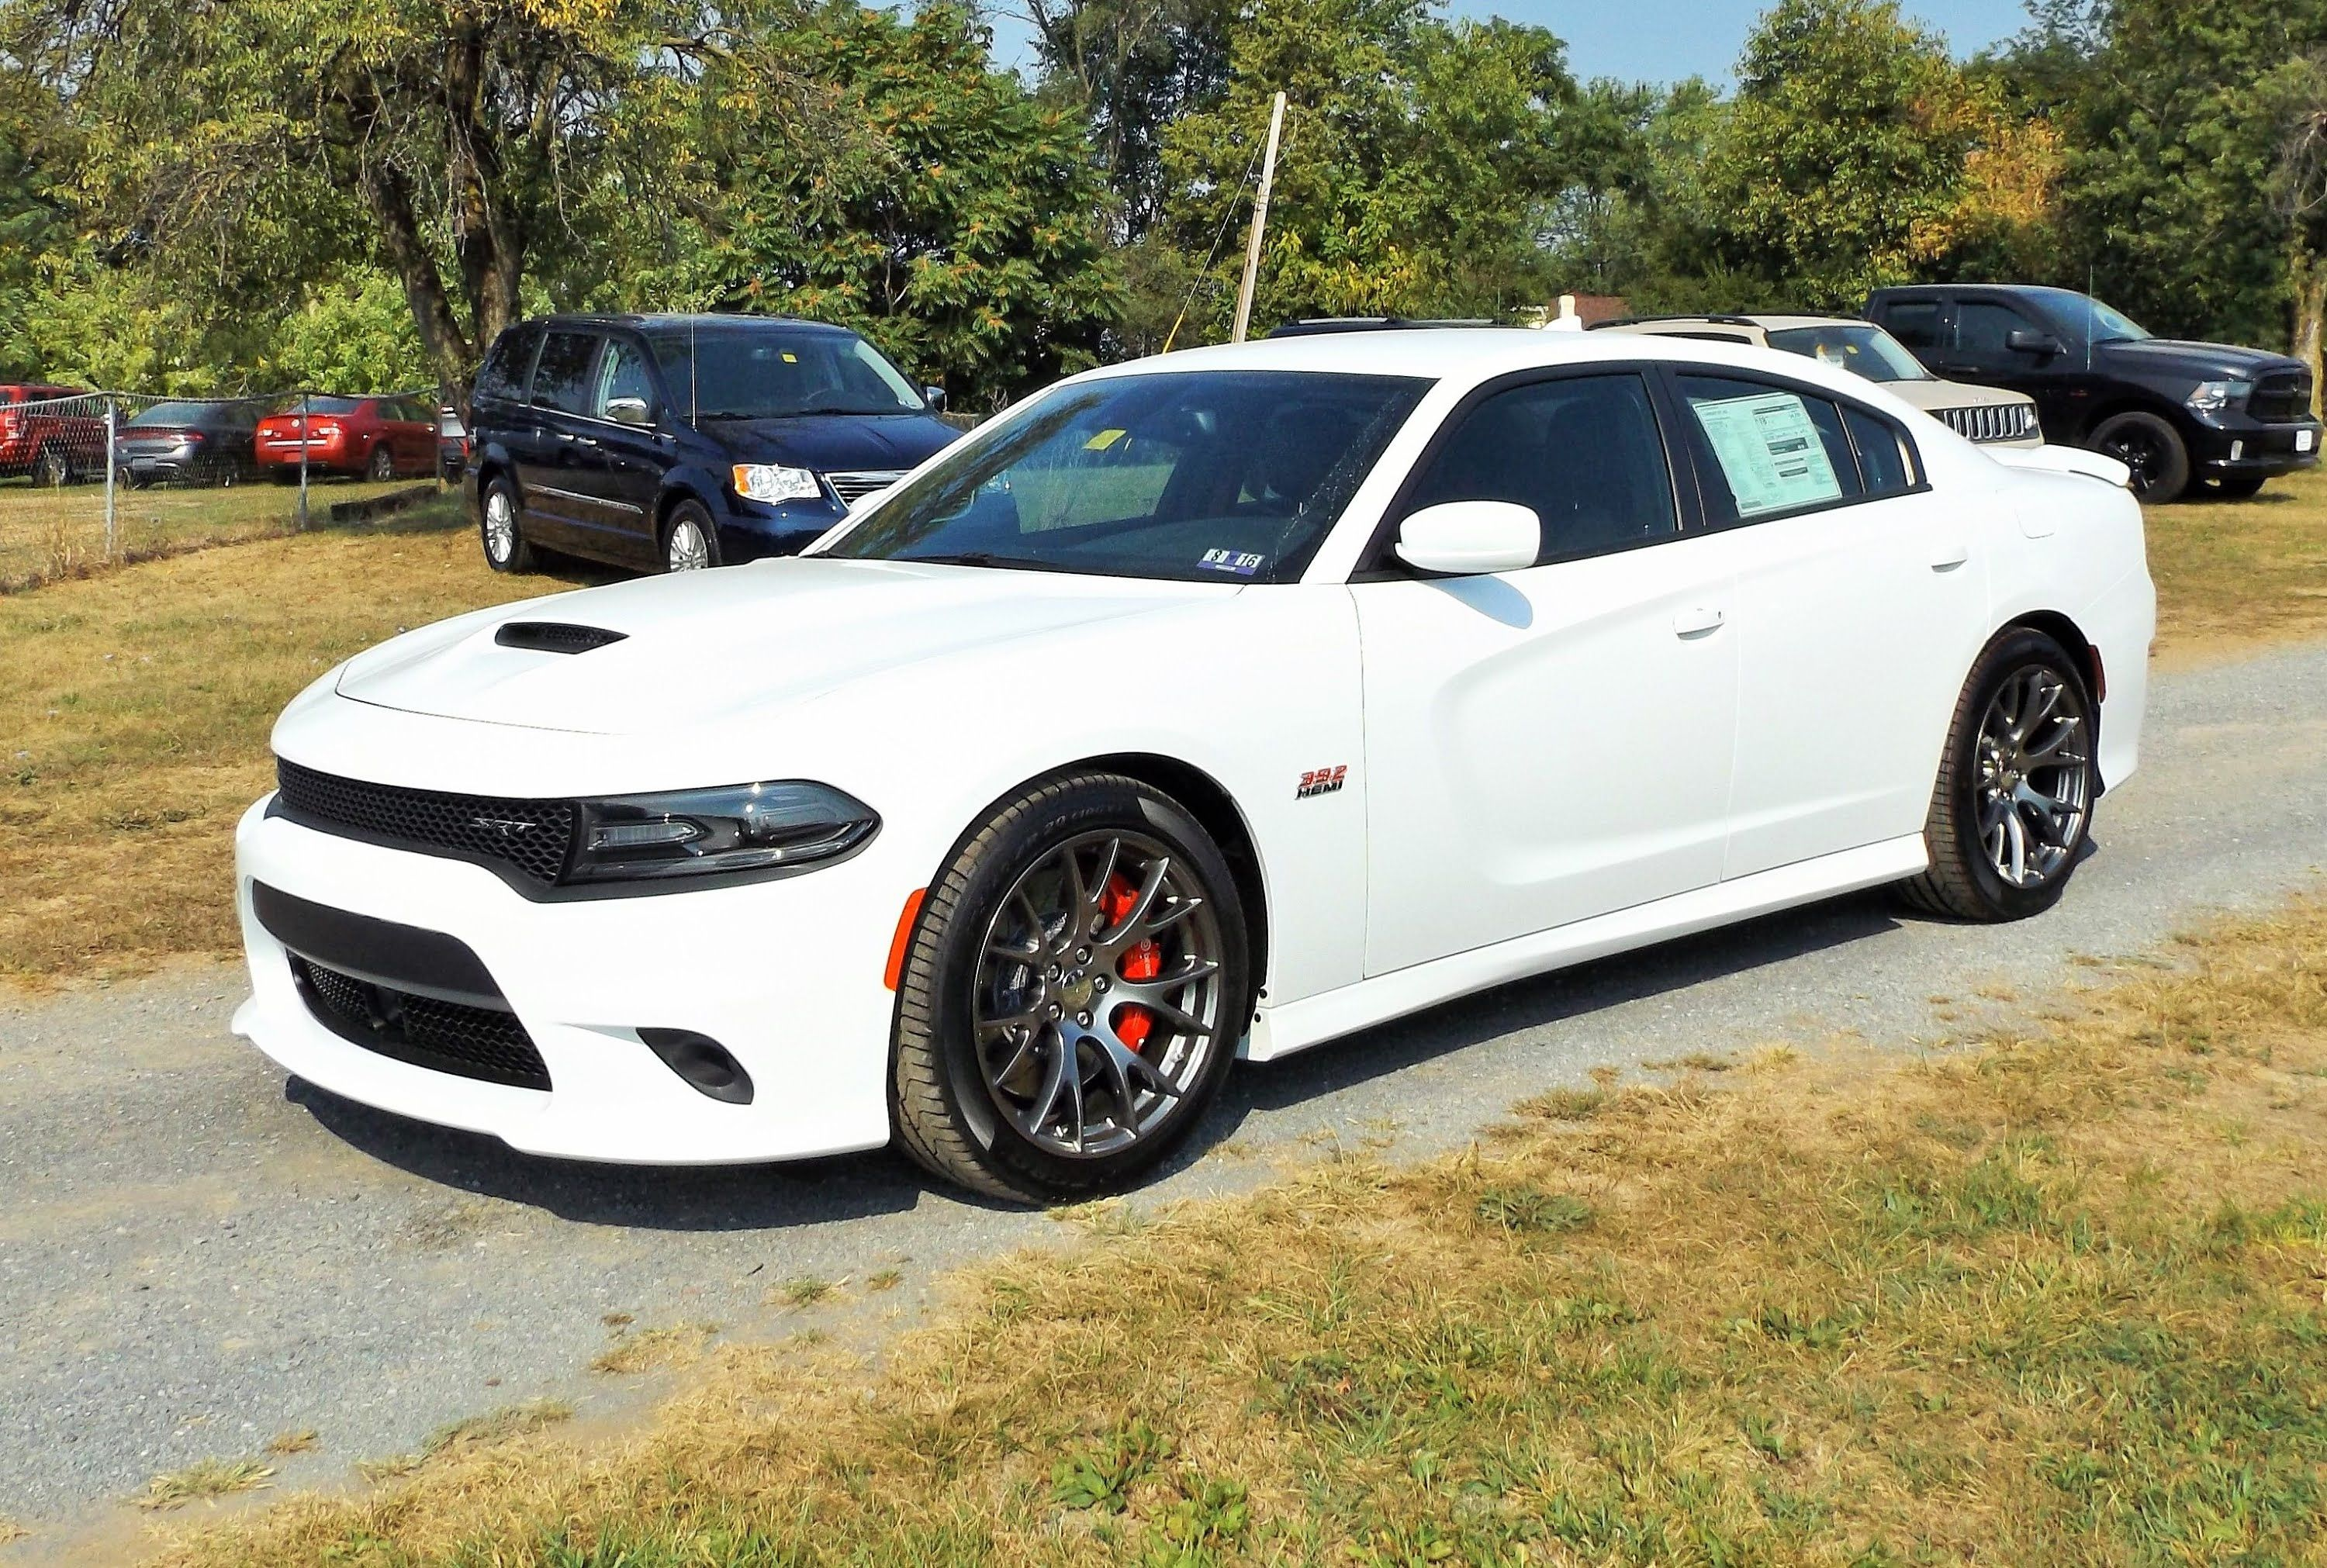 2015 Dodge Charger Srt 392 Start Up Exhaust Review And Tour Charger Wheels Dodge Charger Oem Wheels